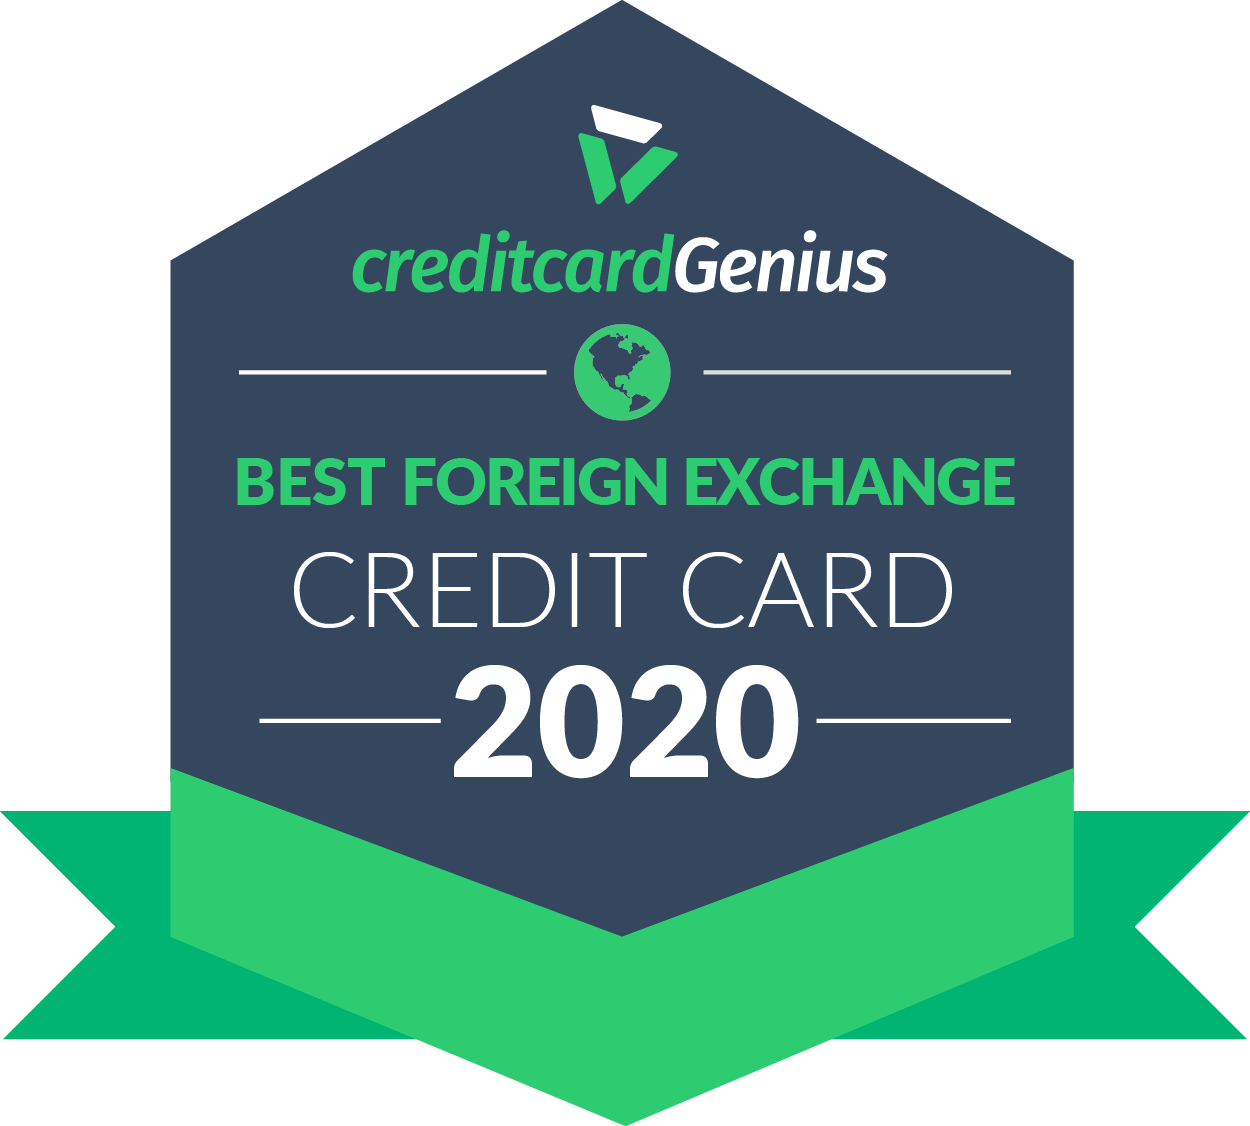 Best flexible credit card in Canada for 2020 award seal